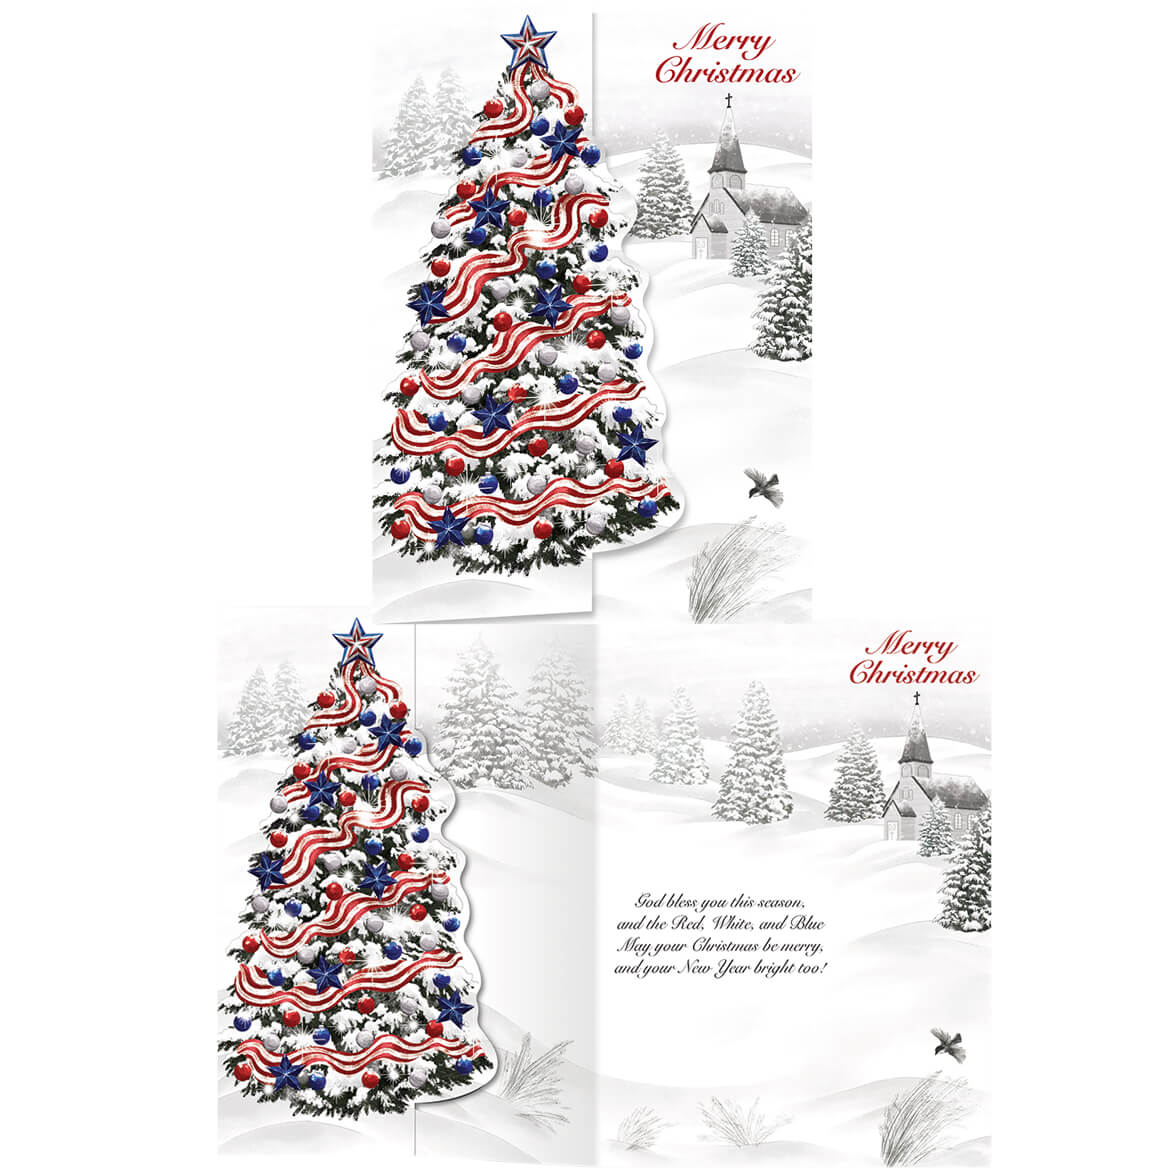 Patriotic Christmas.Details About Patriotic Christmas Cards With Envelopes Red White And Blue Snow Covered Tree